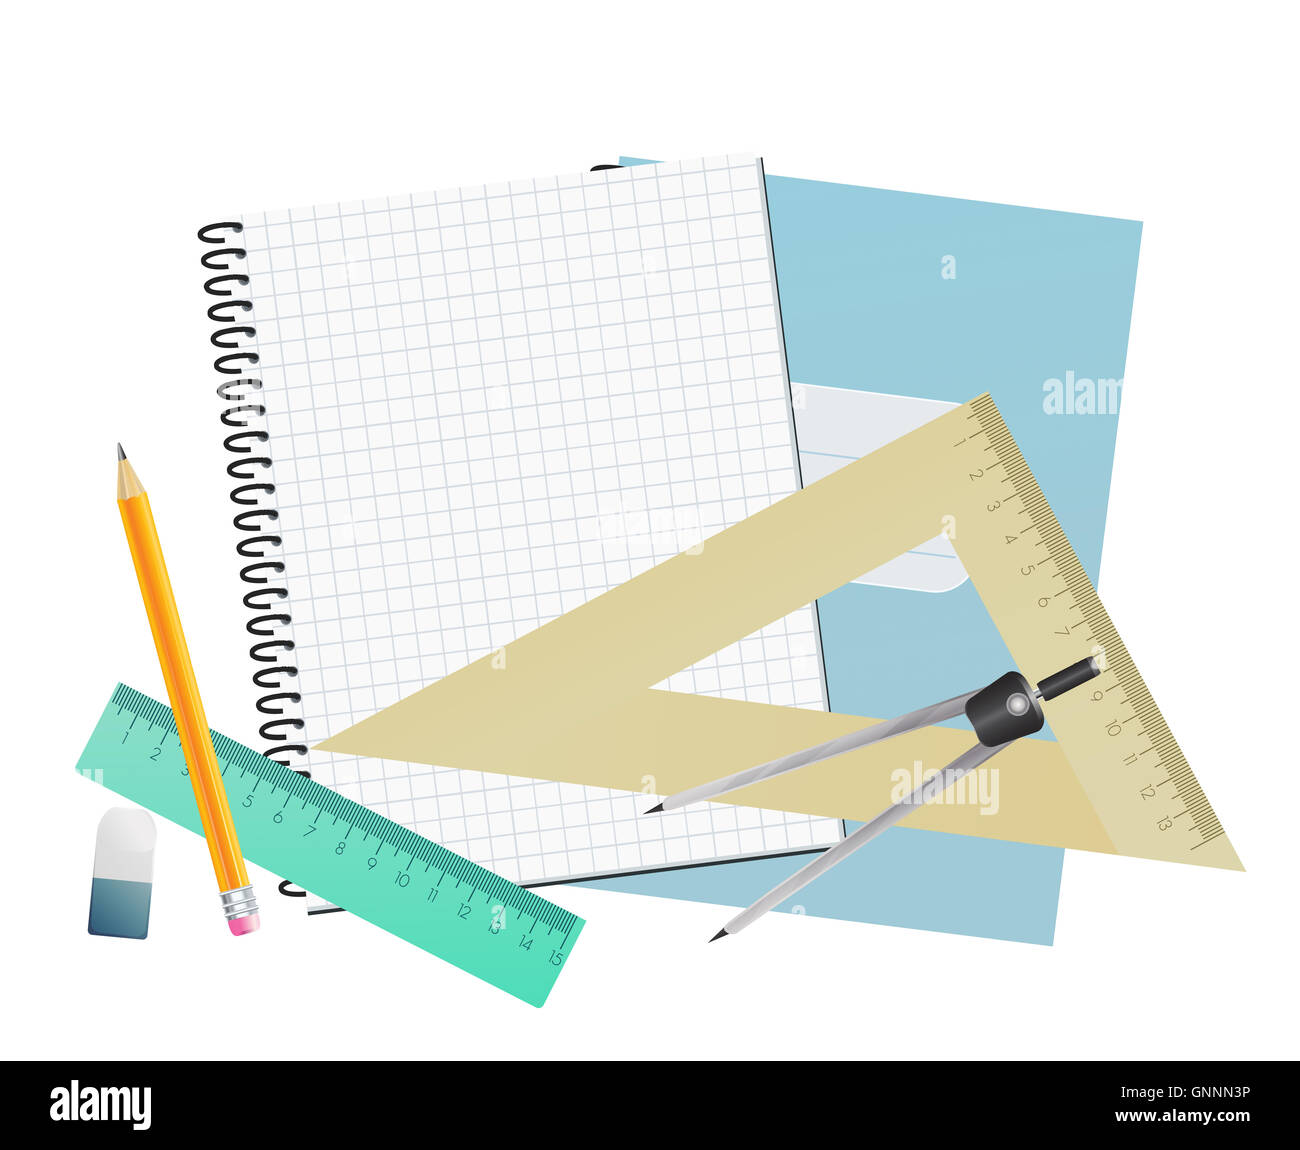 Notebook blank page, rulers, pencil, divider and eraser. School background. - Stock Image